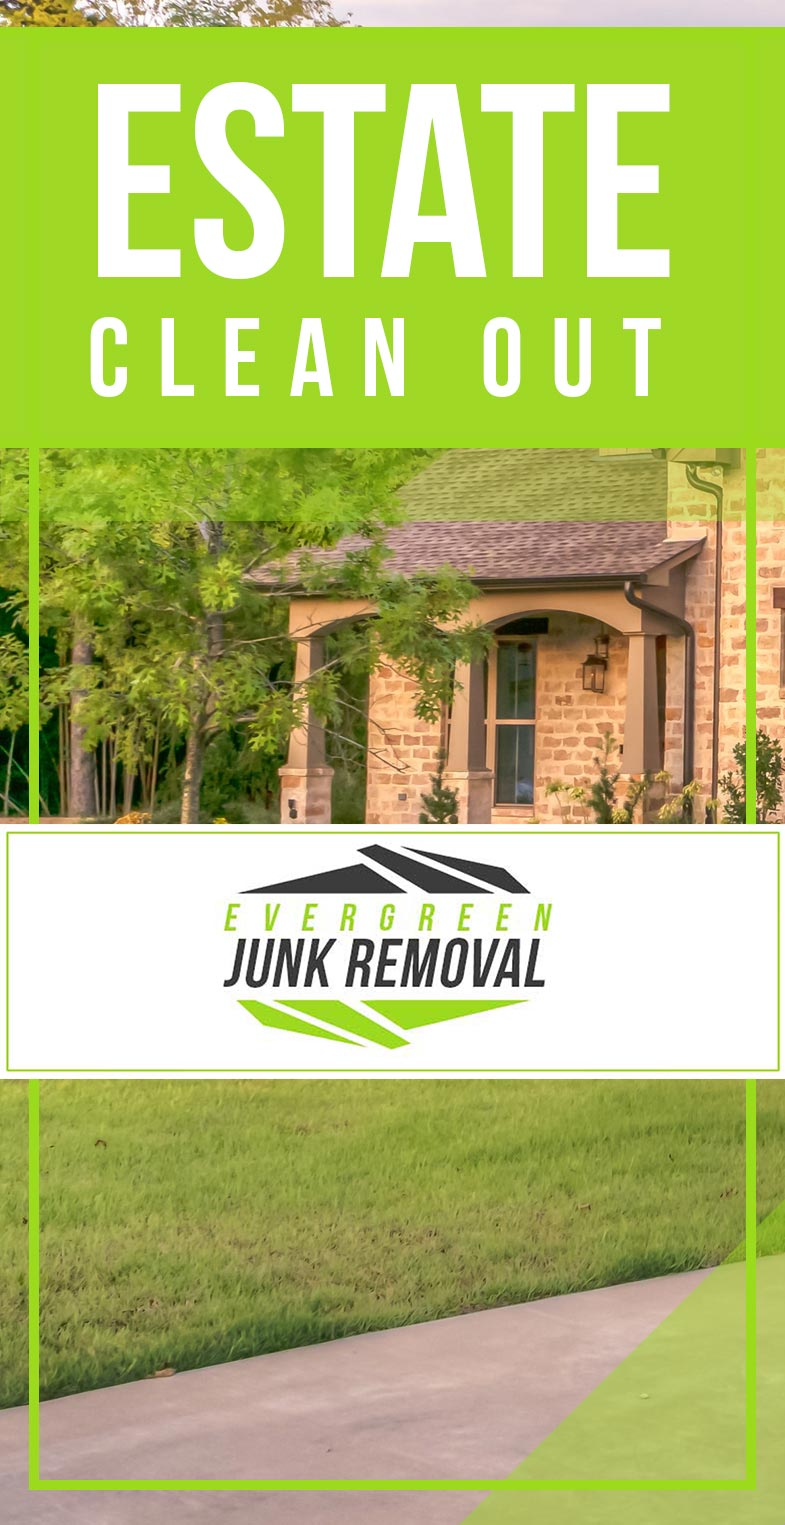 Livonia Property Clean Out